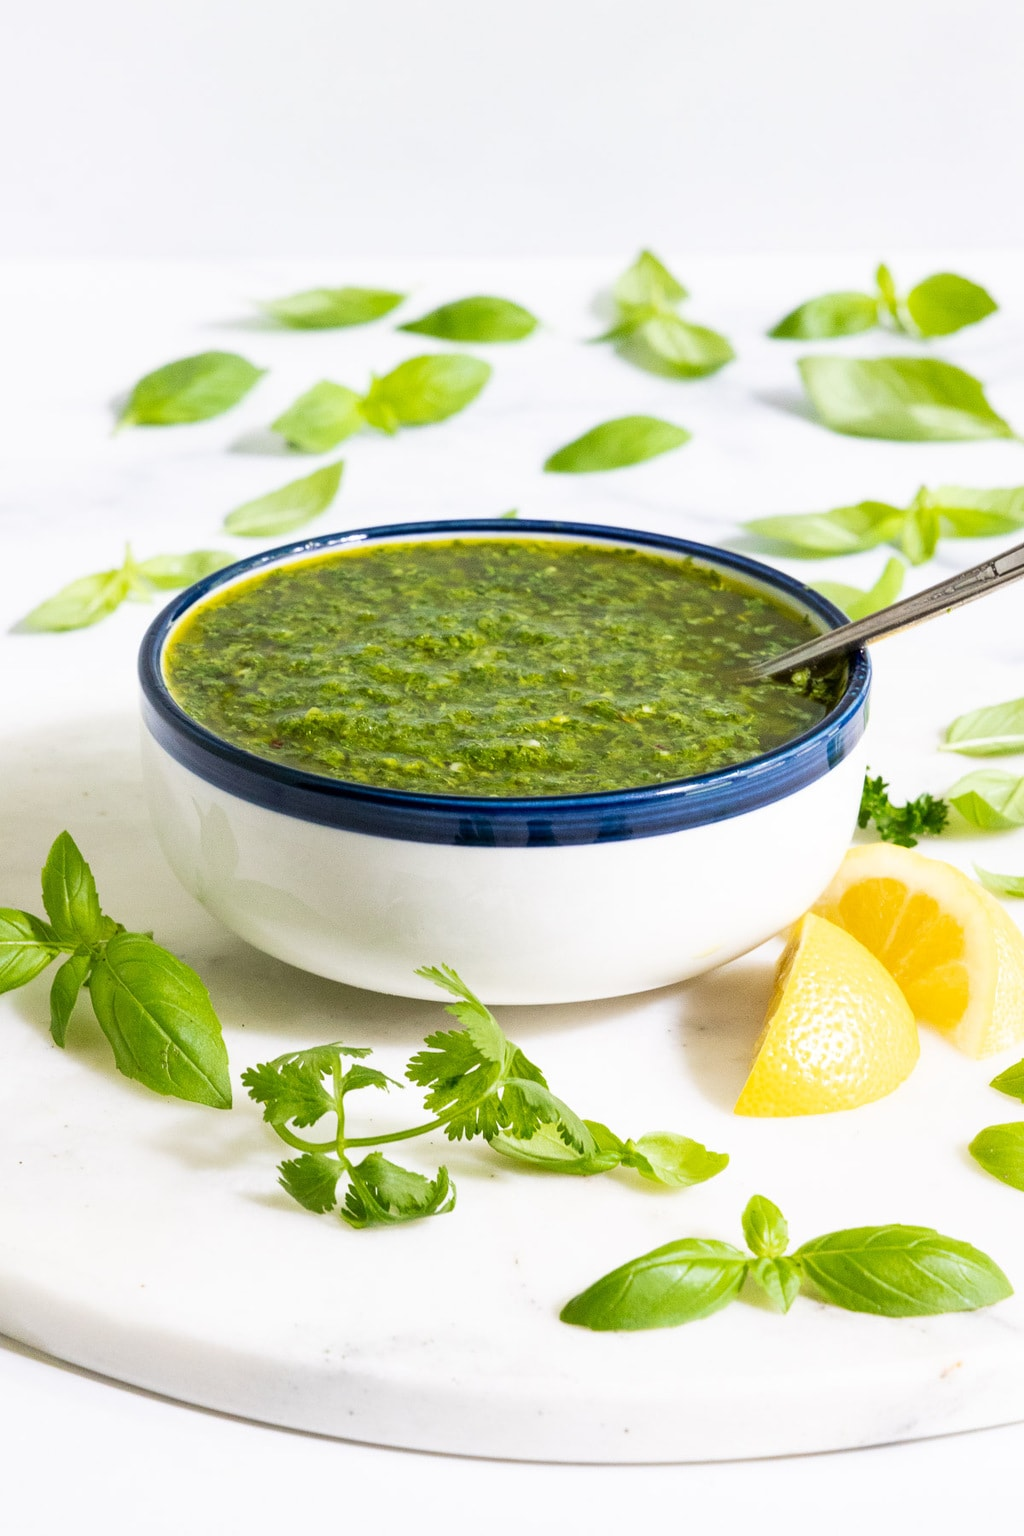 Vertical picture of Chimichurri Sauce in a white bowl on a white background with fresh basil leaves